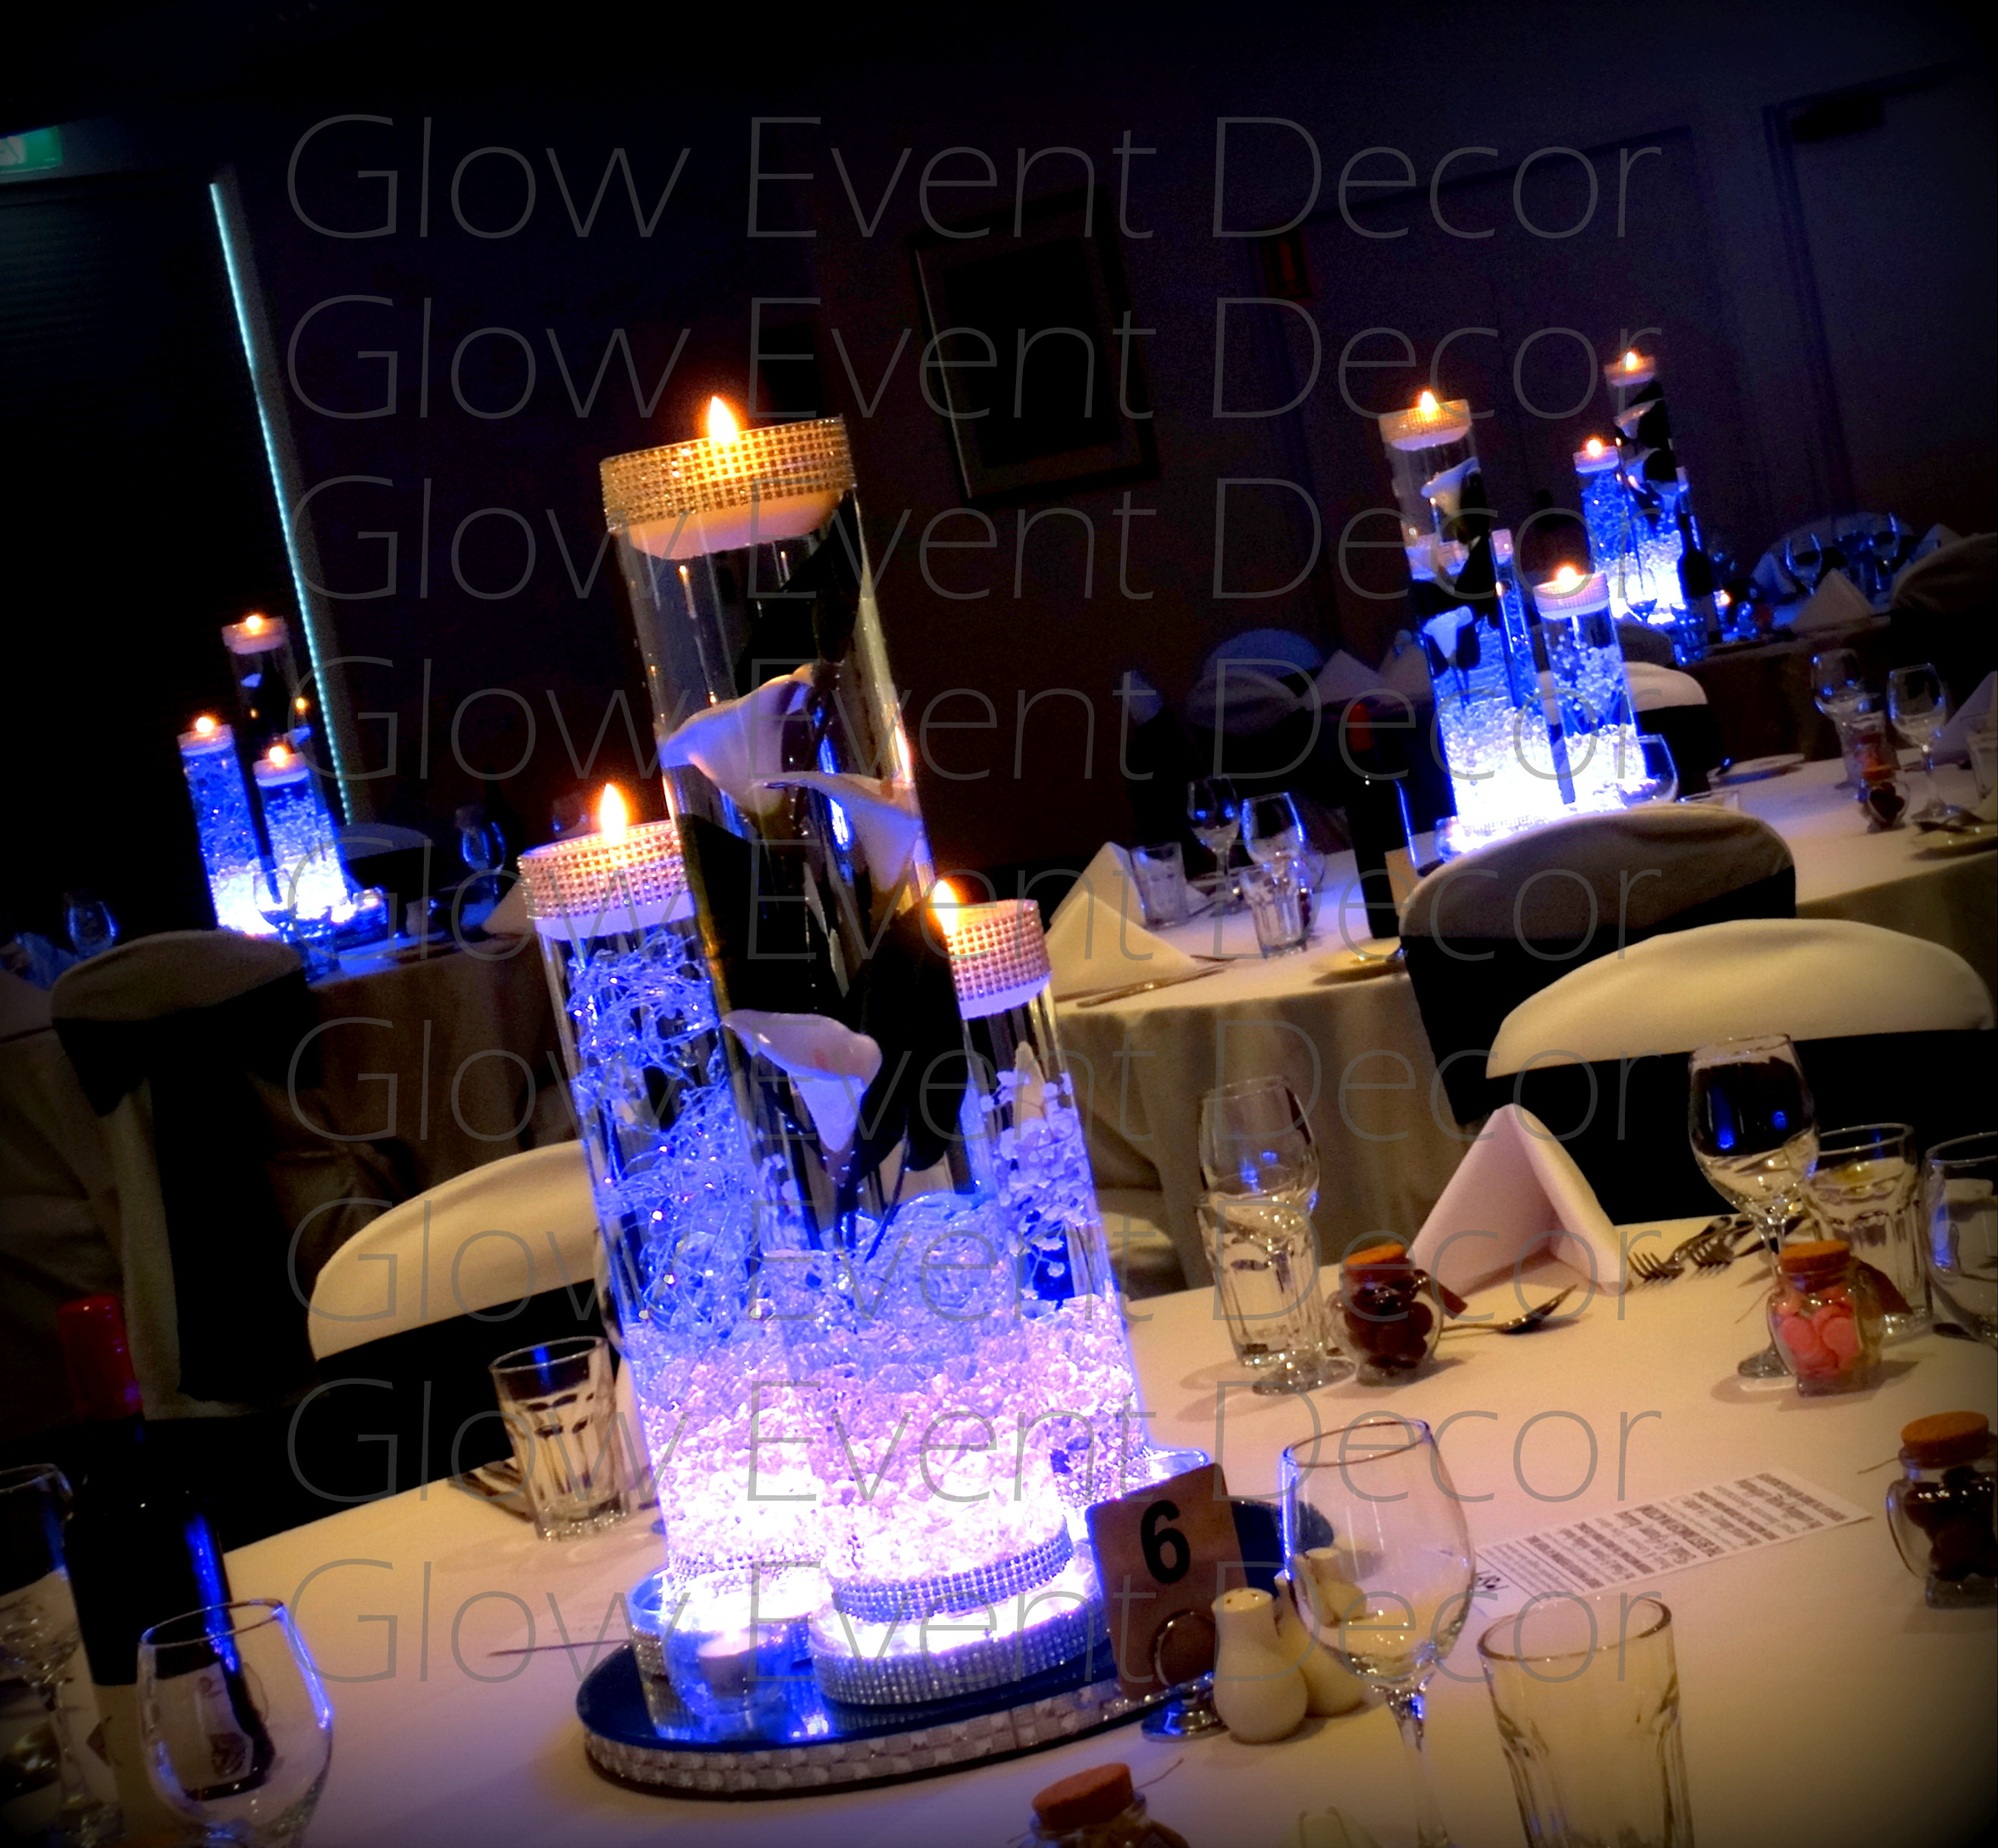 Vase Lighting Cylinder Trio With Led Light Bases And Floating Candles For Hire Glow